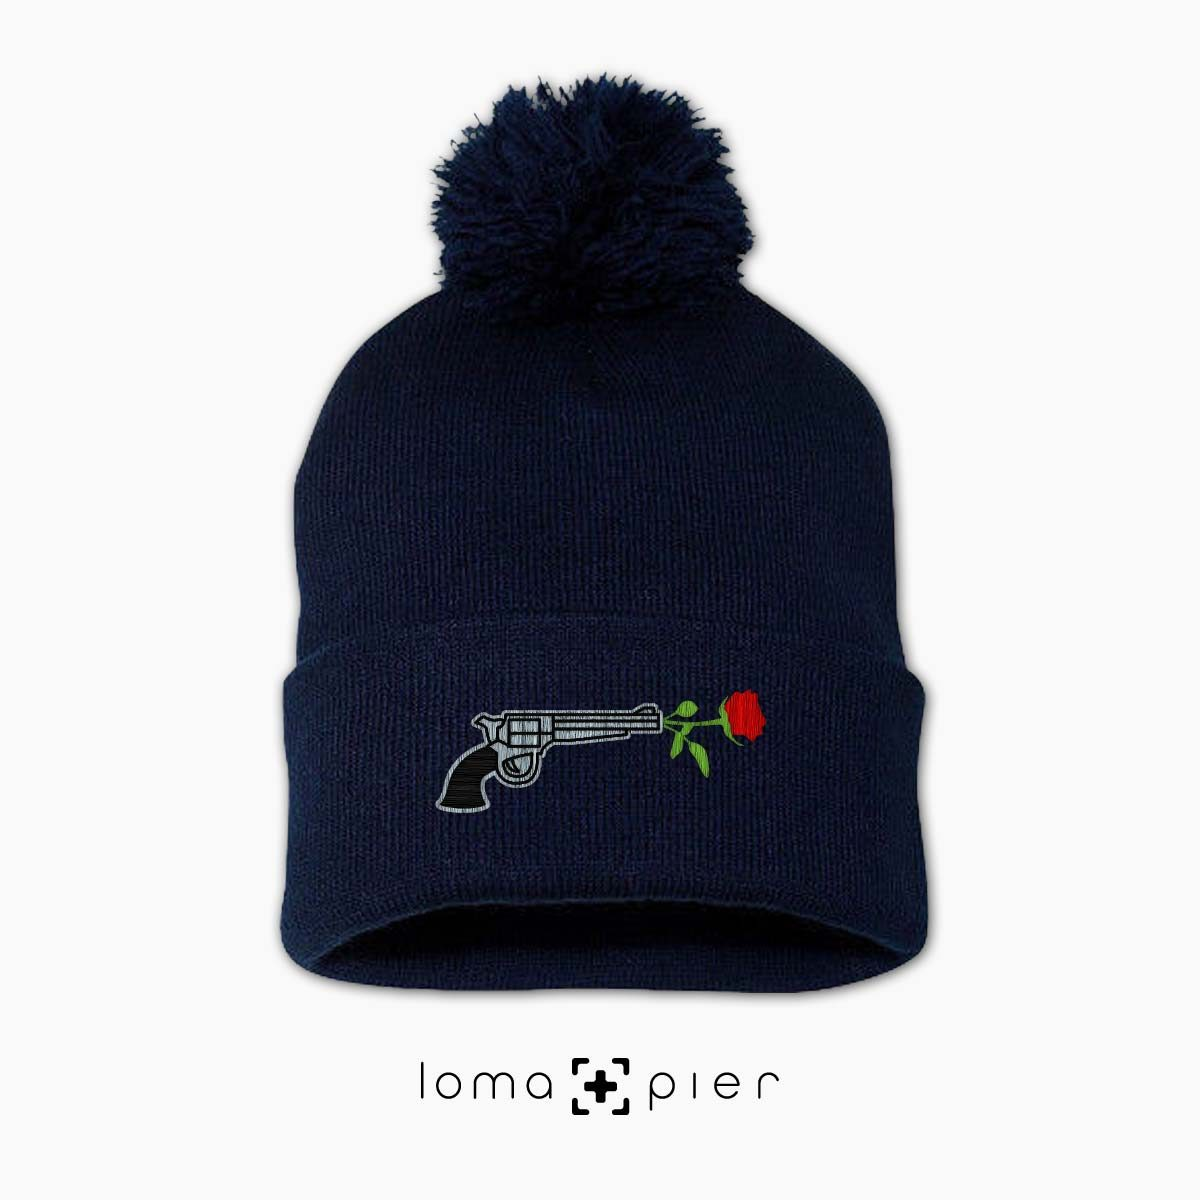 ROSE REVOLVER icon embroidered on a navy blue pom pom beanie with multicolor thread by loma+pier hat store